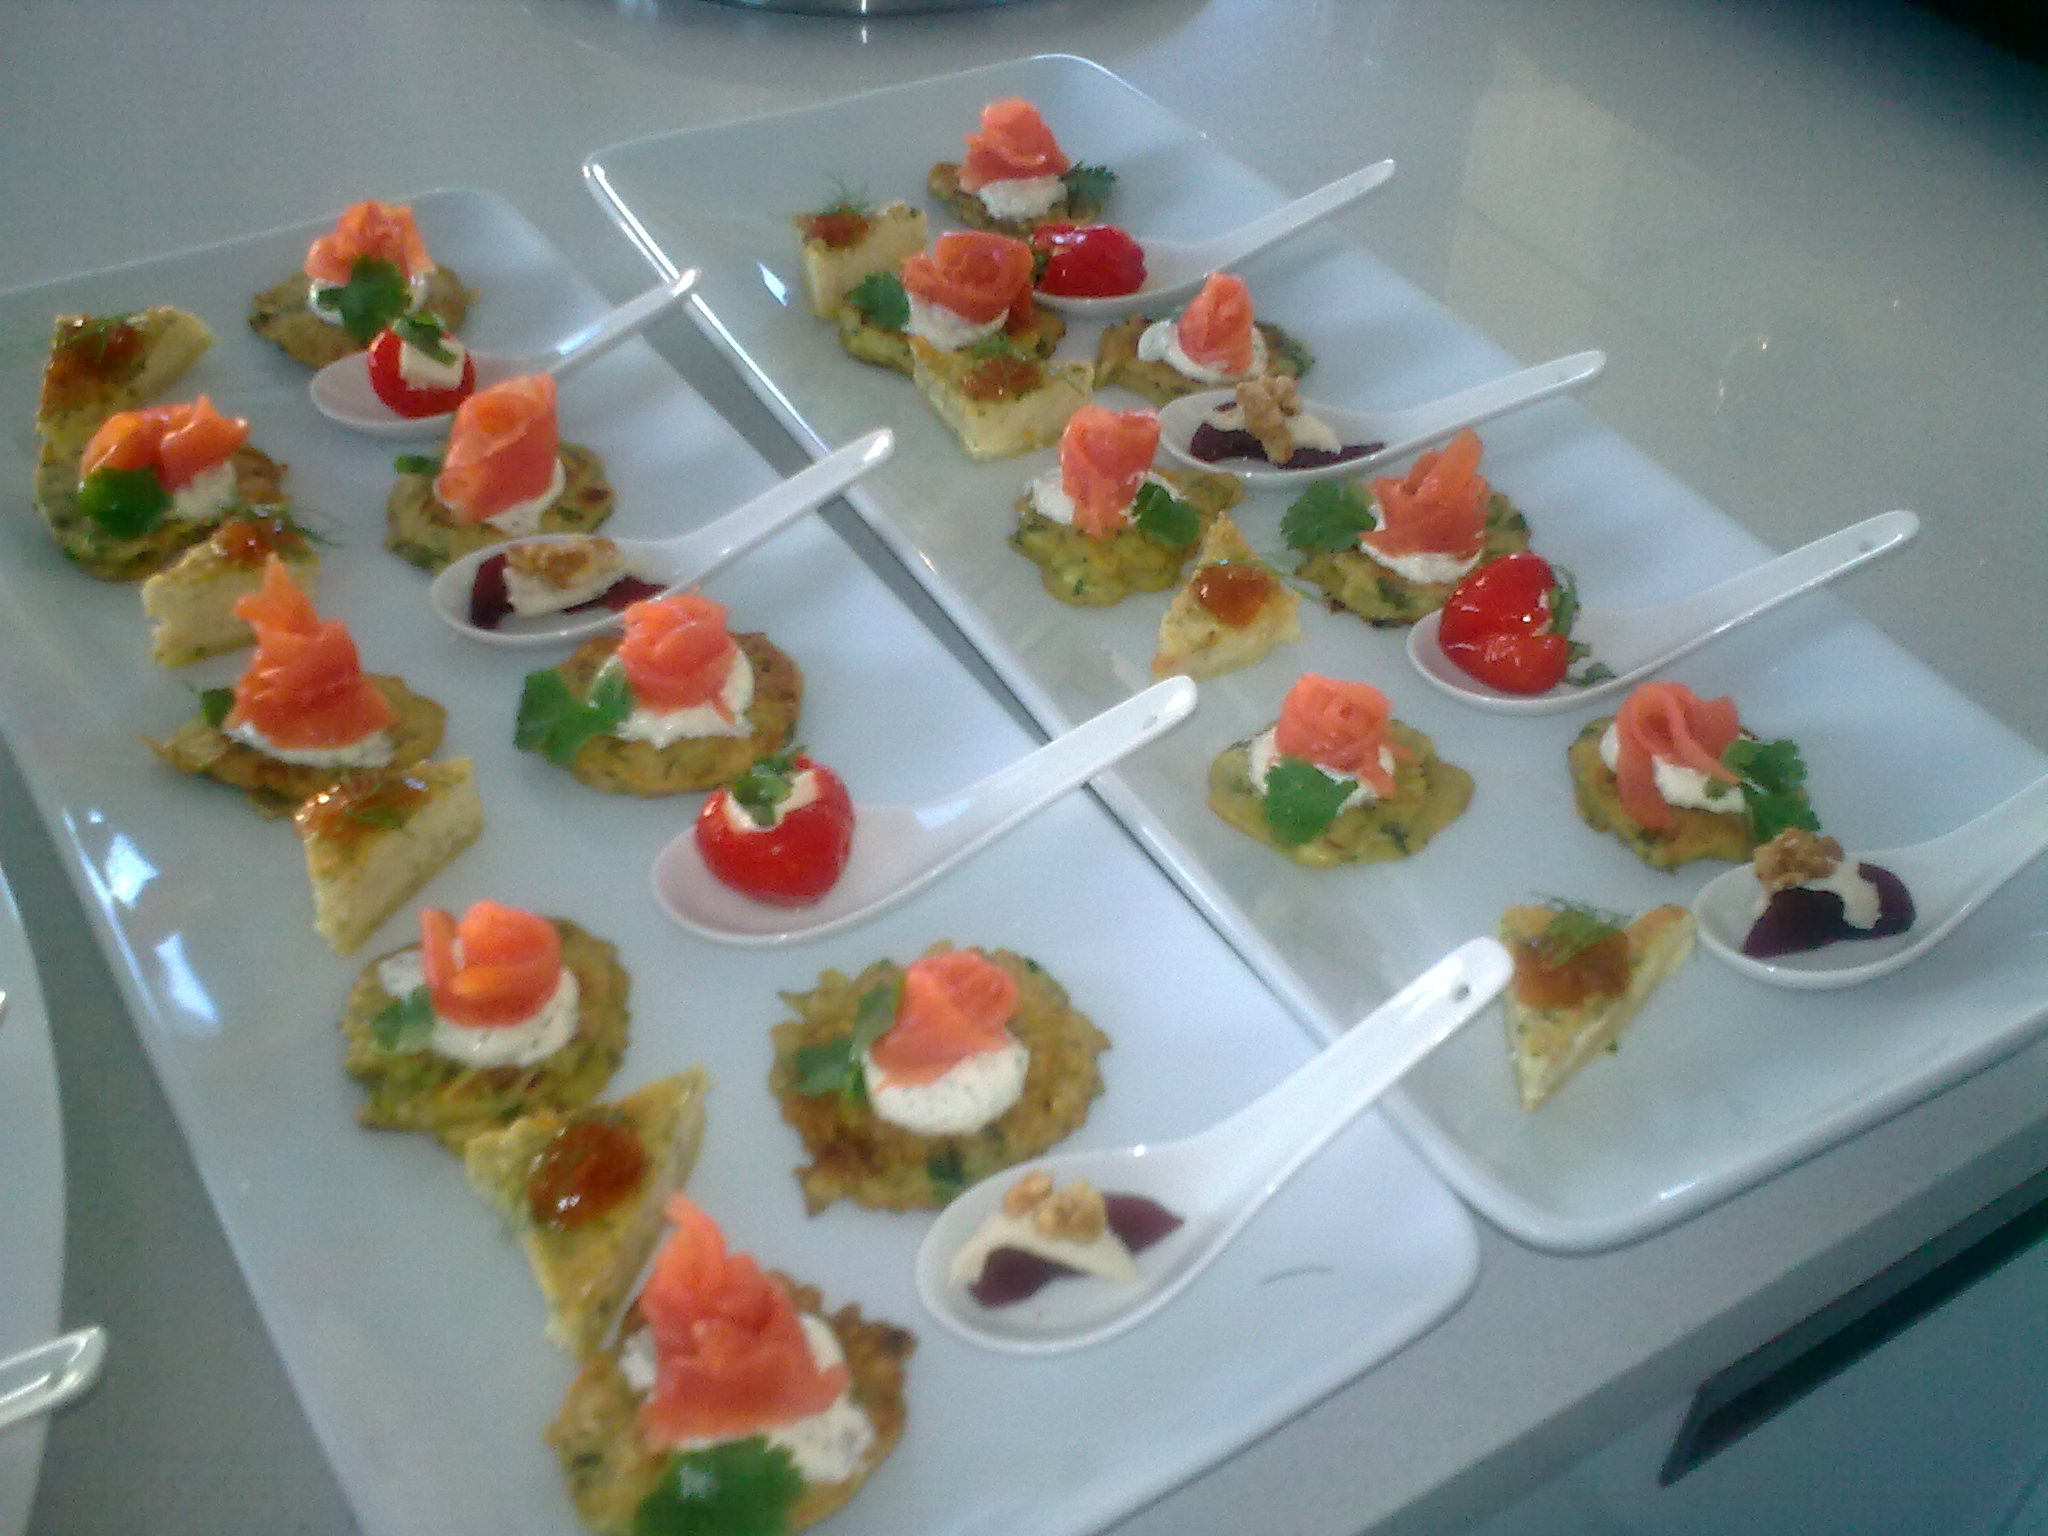 Personal chef service the food crew cape town for Canape platters cape town